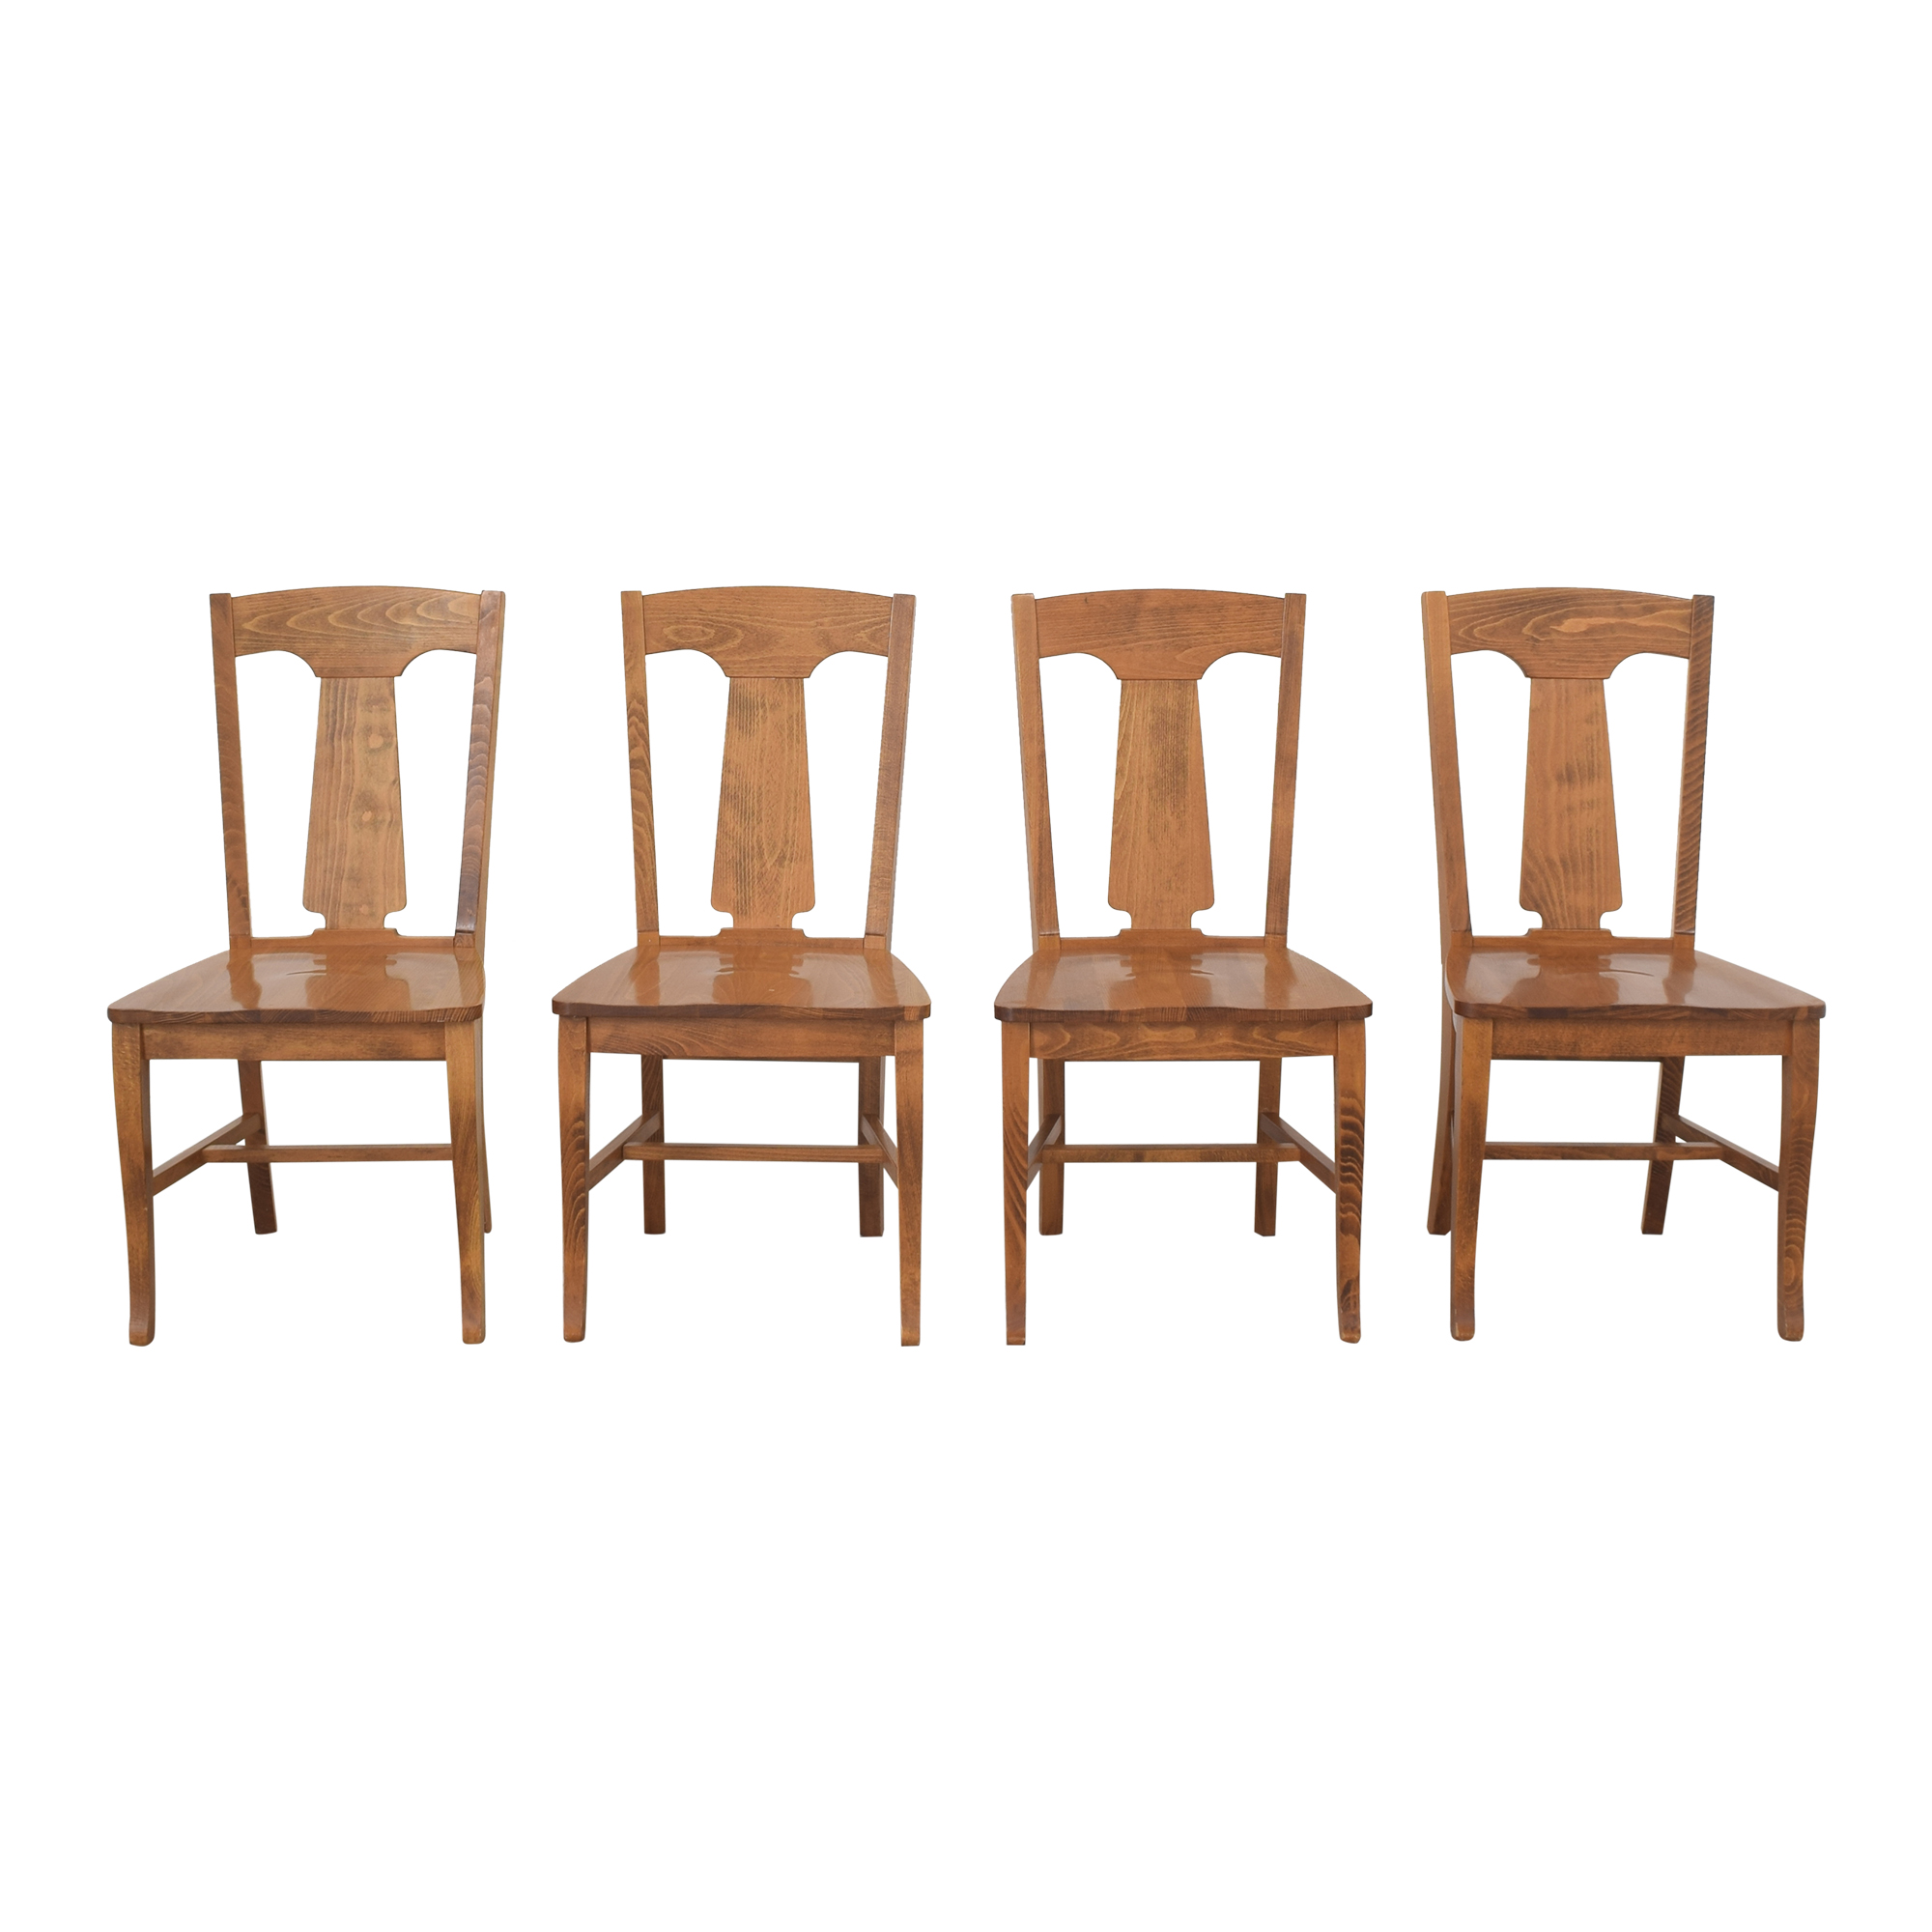 Pottery Barn Pottery Barn Loren Dining Chairs dimensions